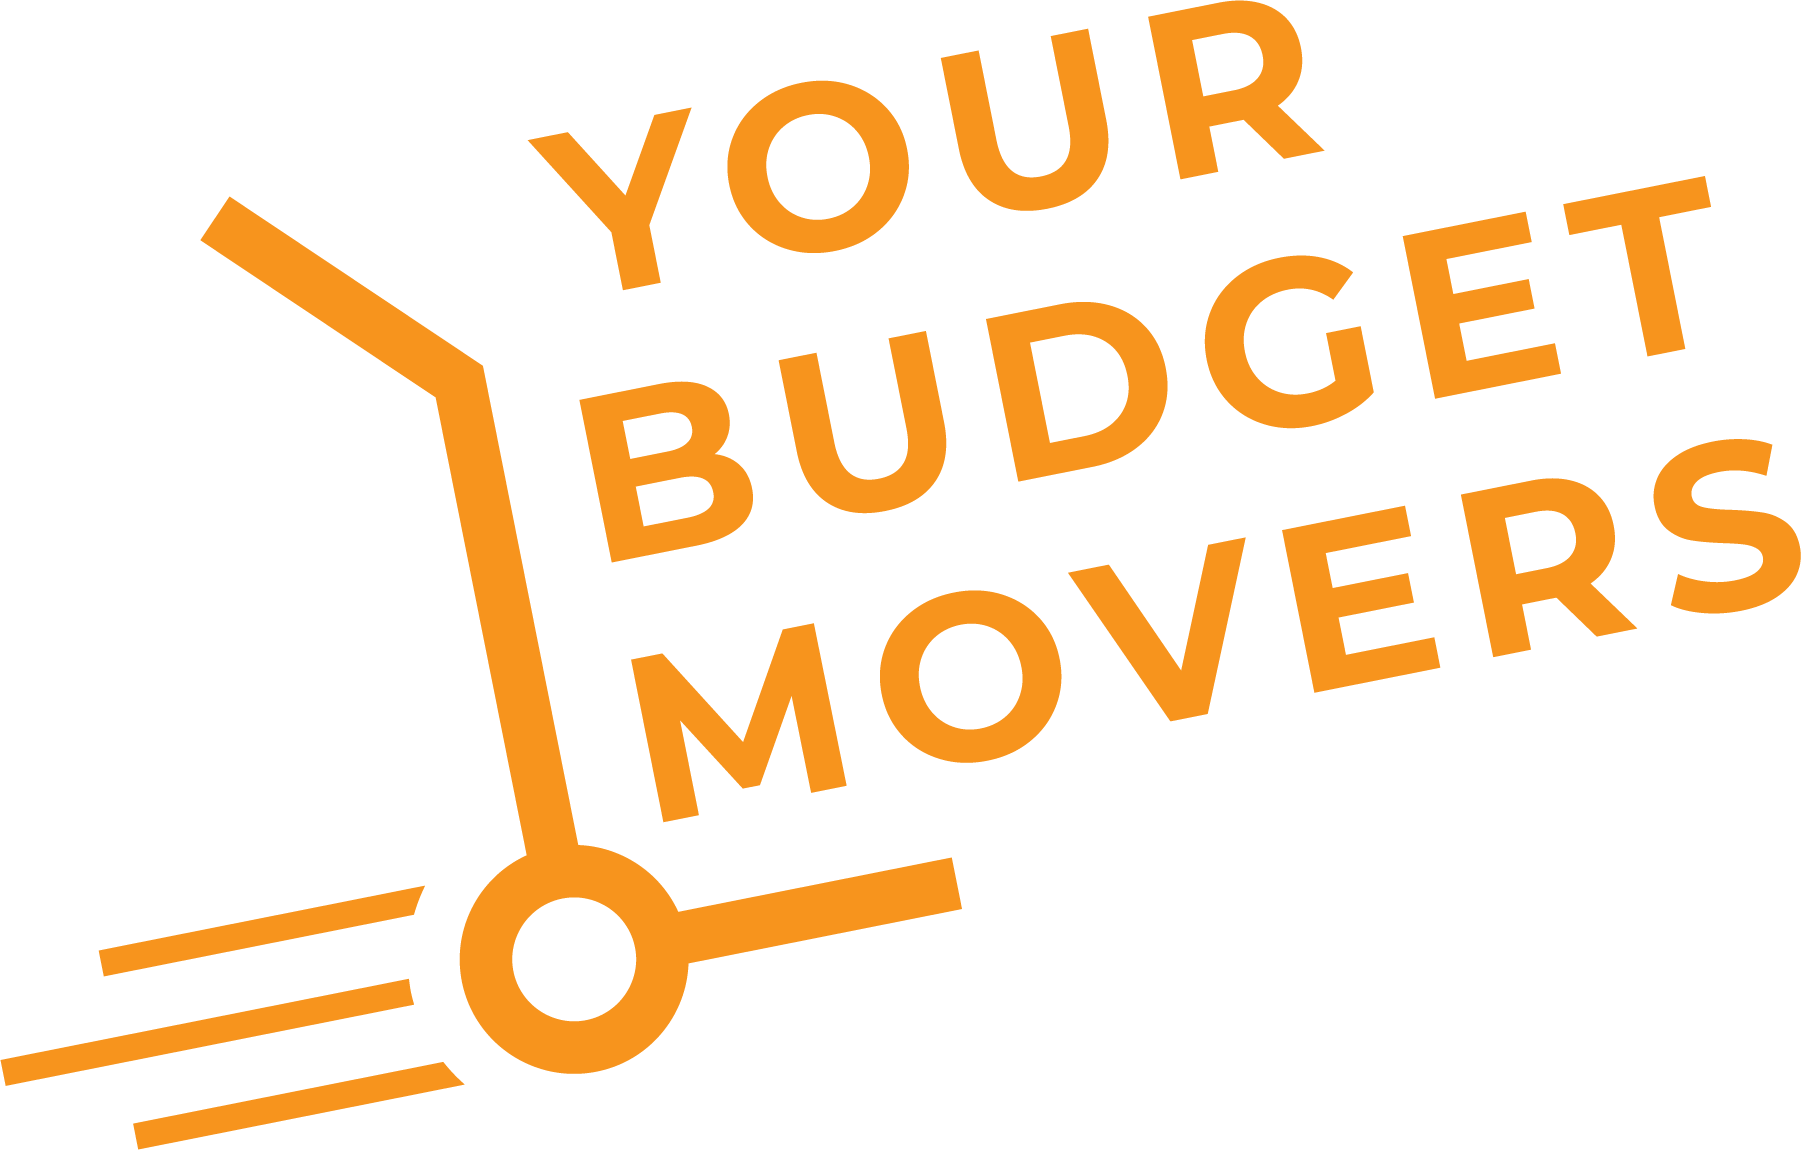 Your Budget Movers Logo